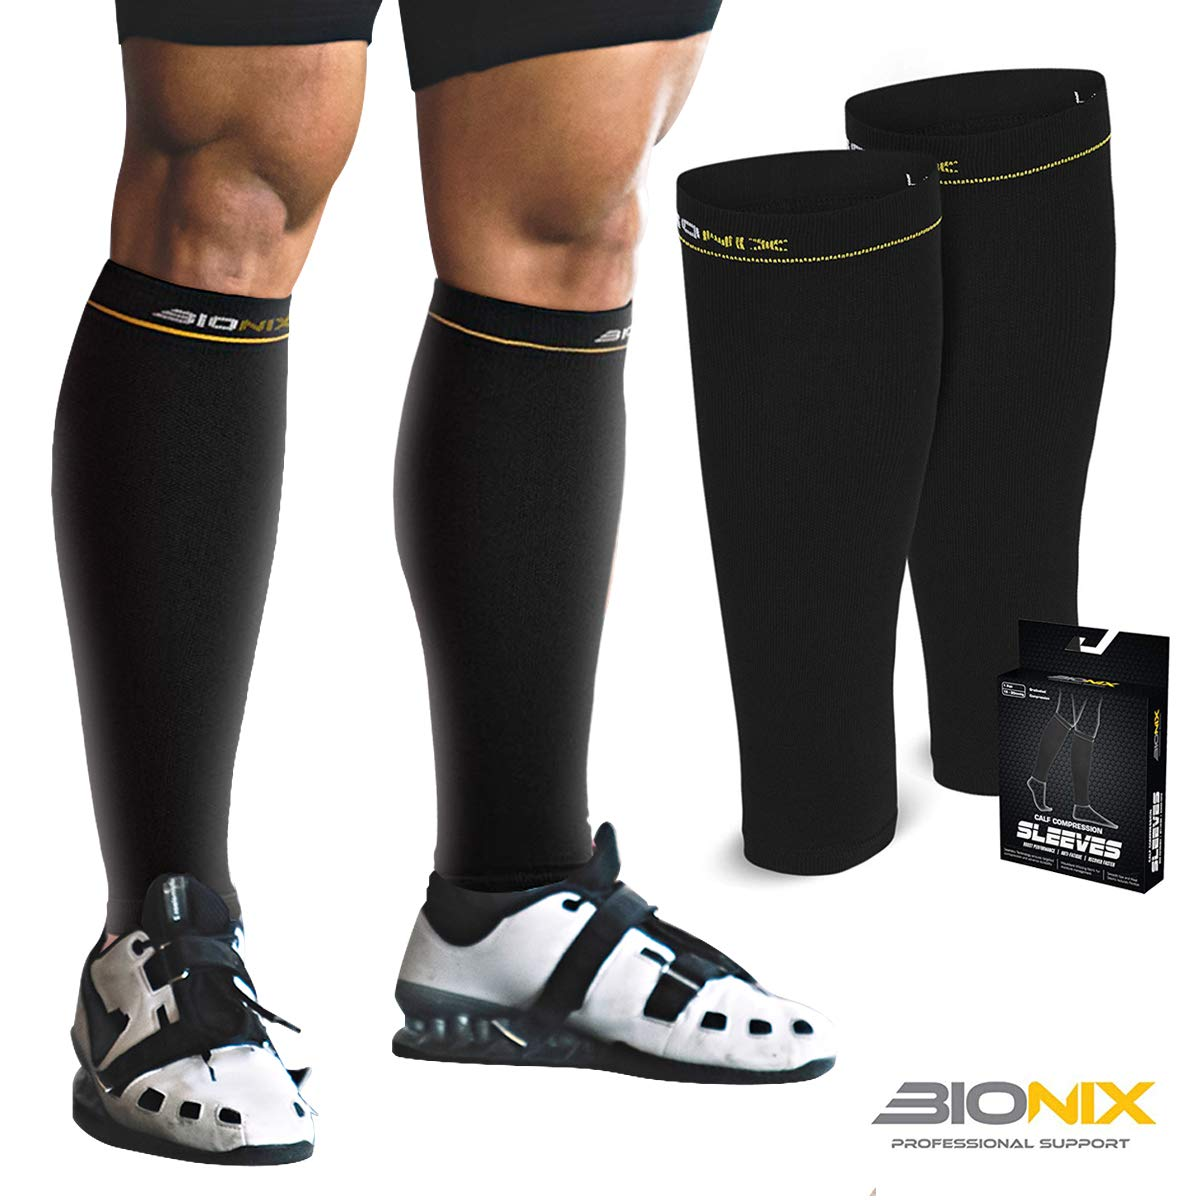 52303923cc9f6 Bionix Calf Compression Sleeves Support For Men and Women | Help ...